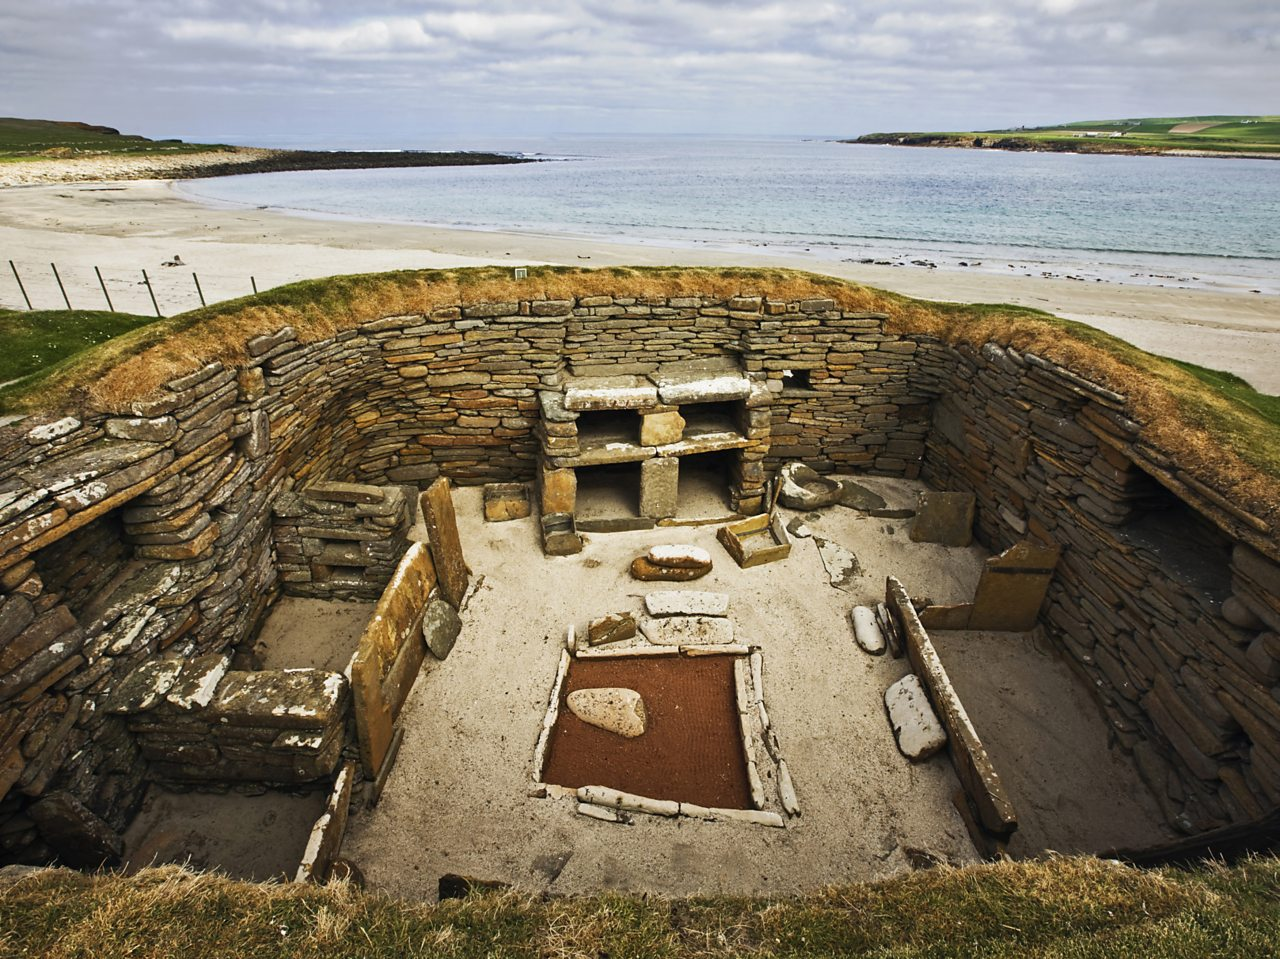 A Viking settlement at Skara Brae in the Orkney Islands, Scotland